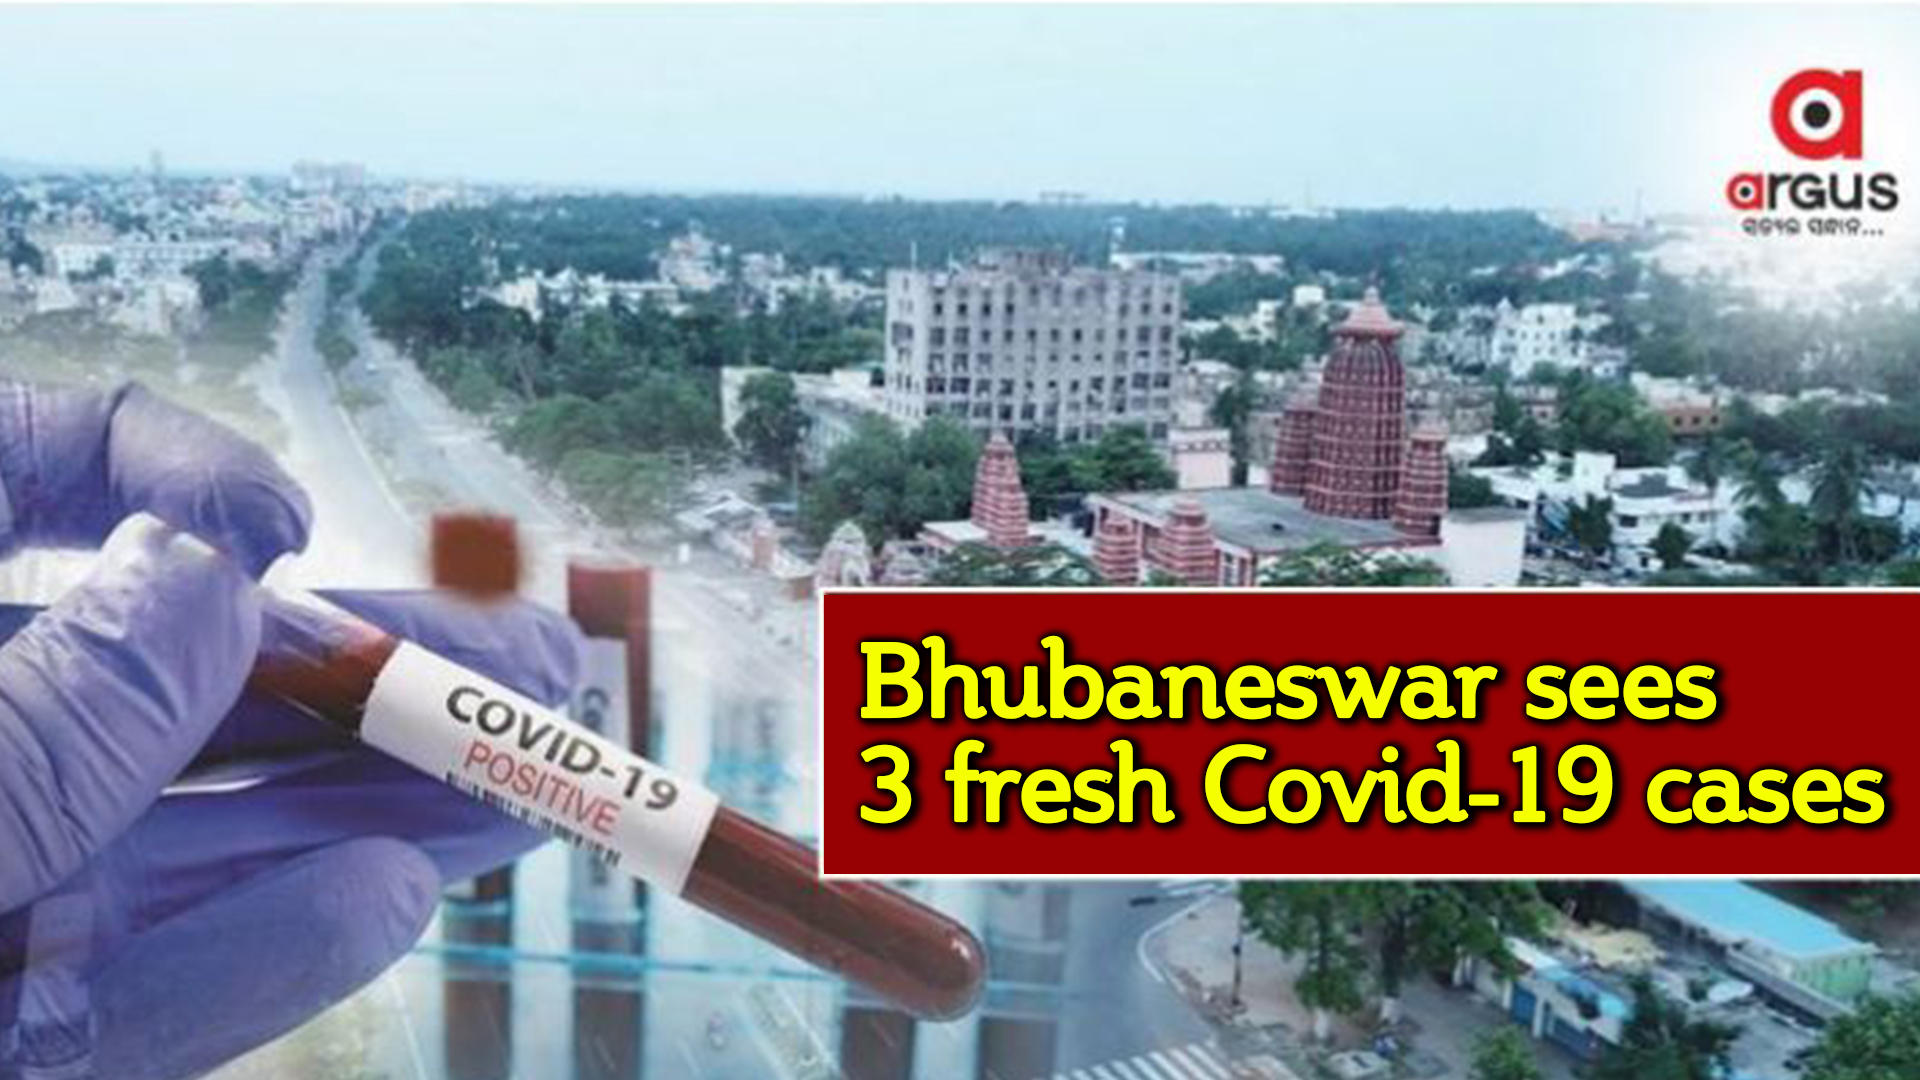 Bhubaneswar reports 3 new Covid-19 cases, 10 recoveries